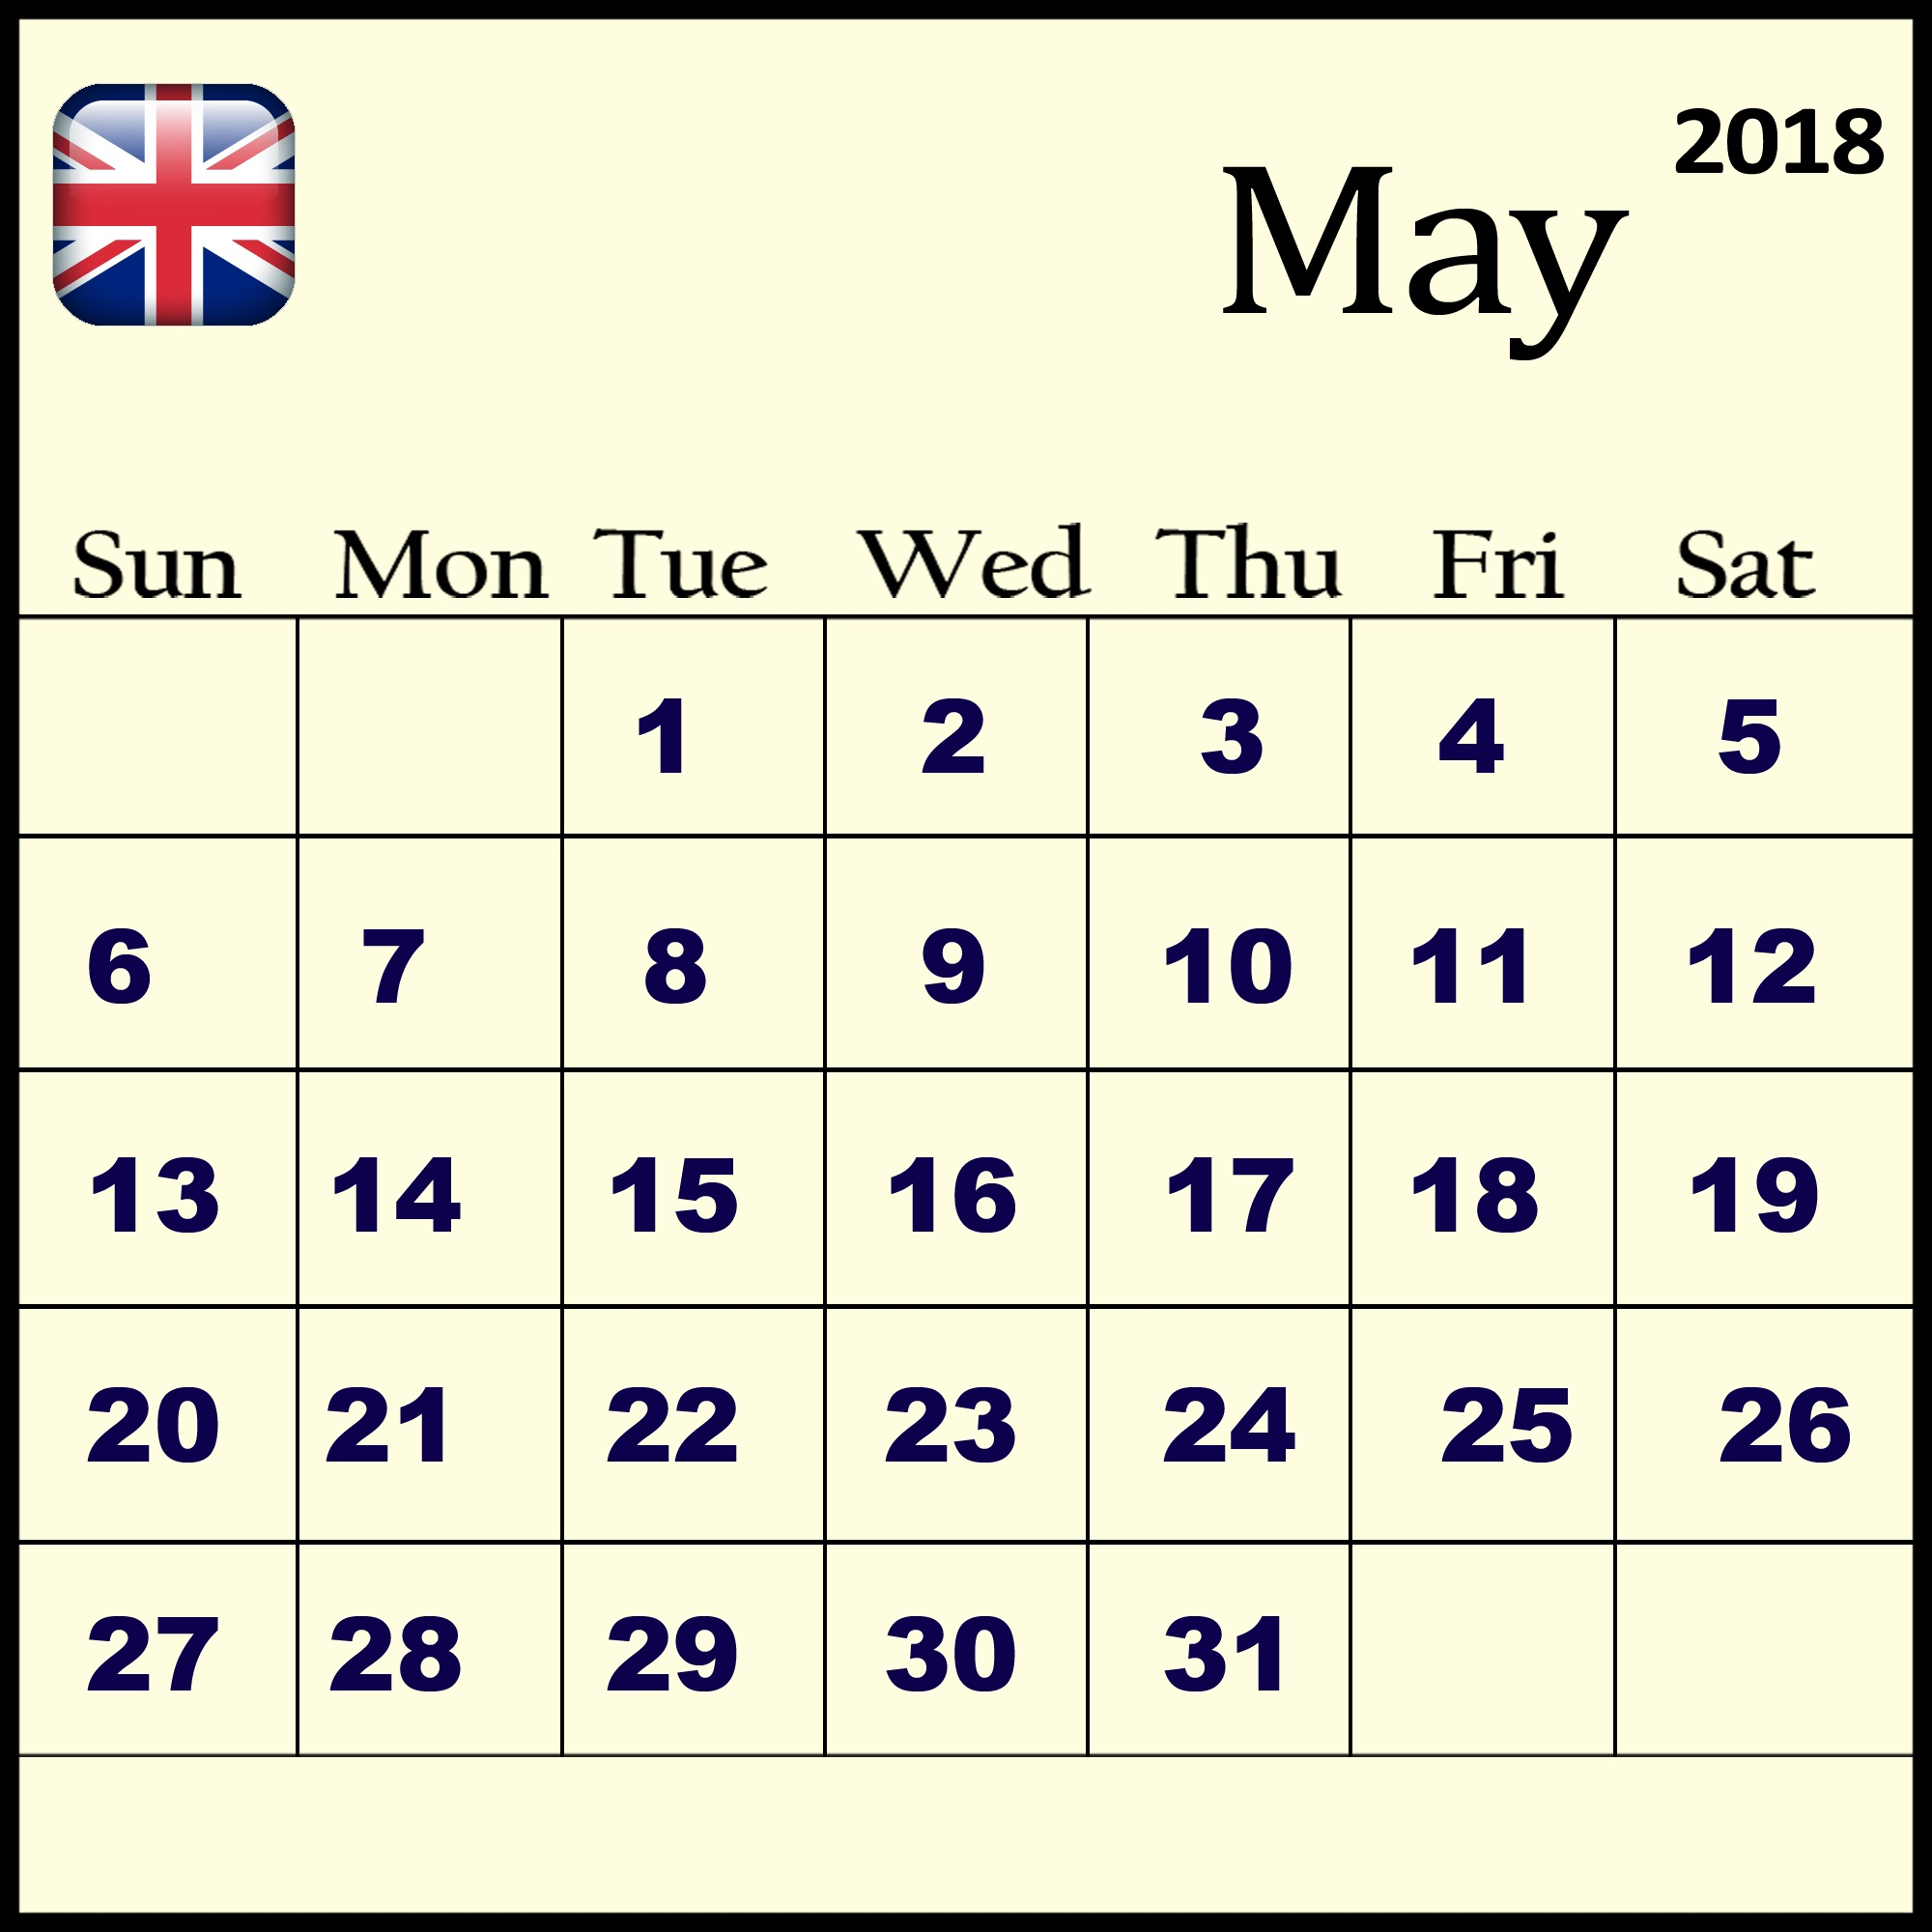 Calendar May Month 2018 UK